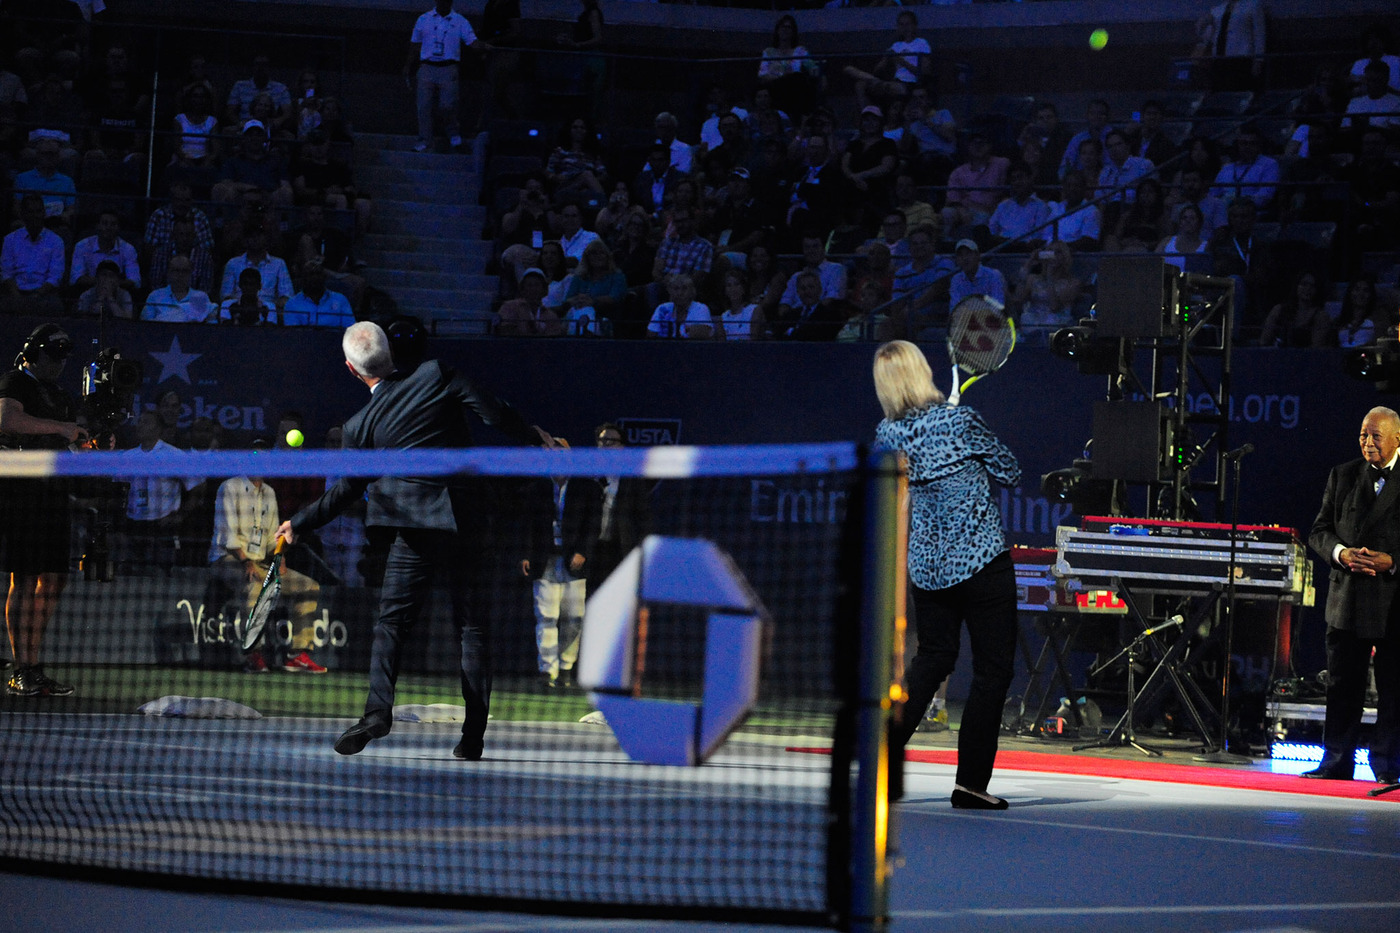 Martina Navratilova and John McEnore hit tennis balls into the stands during the Opening Ceremony on Arthur Ashe Stadium. - Photo Credit: Andrew Ong/usopen.org